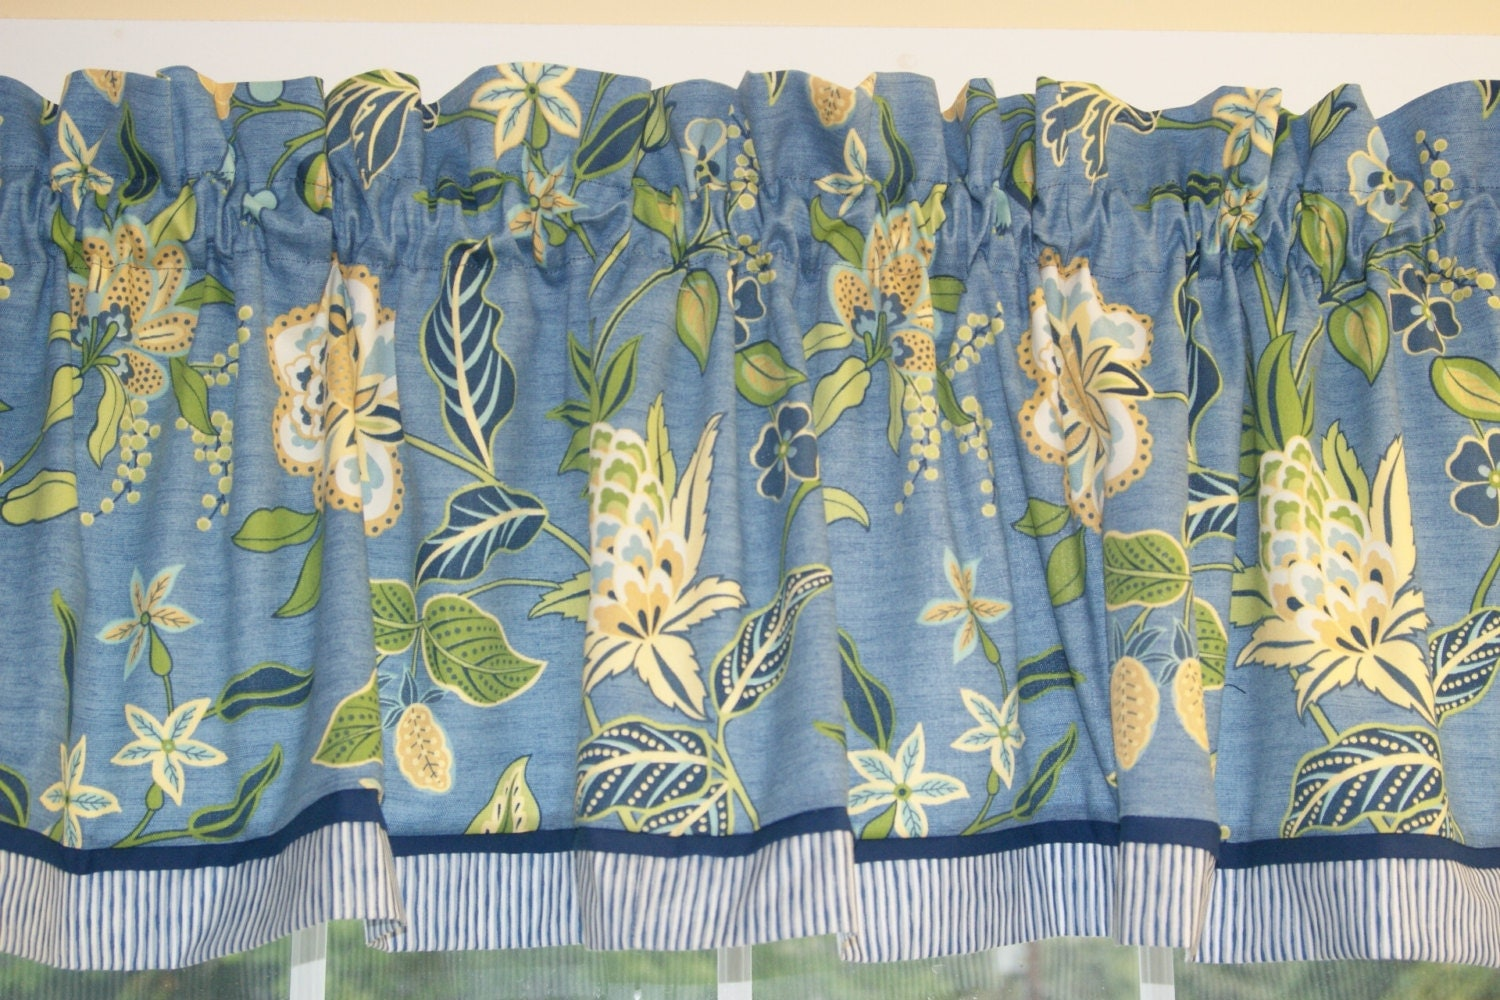 Blue yellow green floral toile valance 17x 81 drapery weight curtain